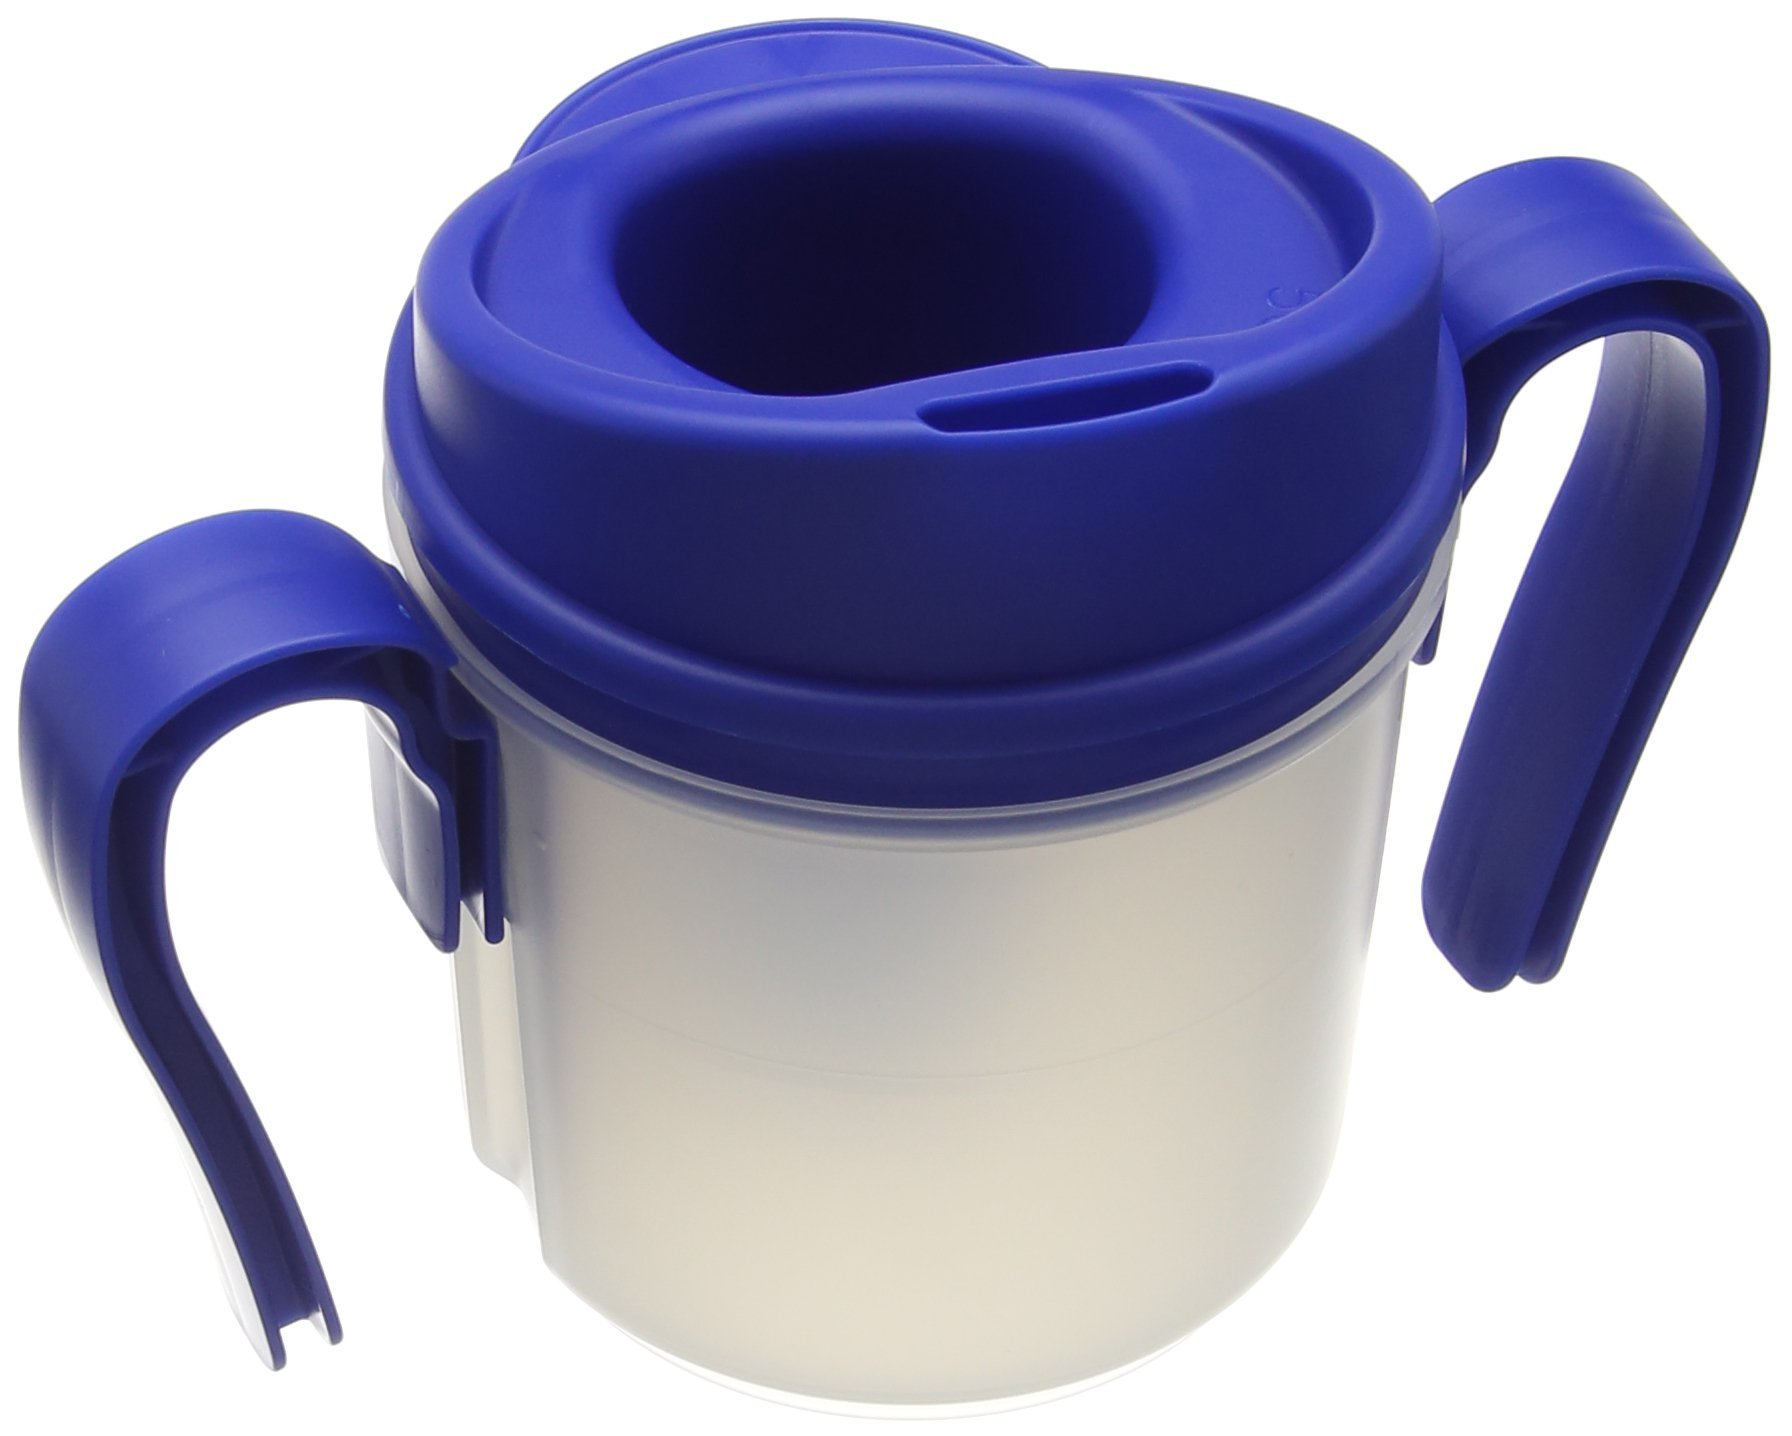 PROVALE Regulating Drinking Cup, 5cc